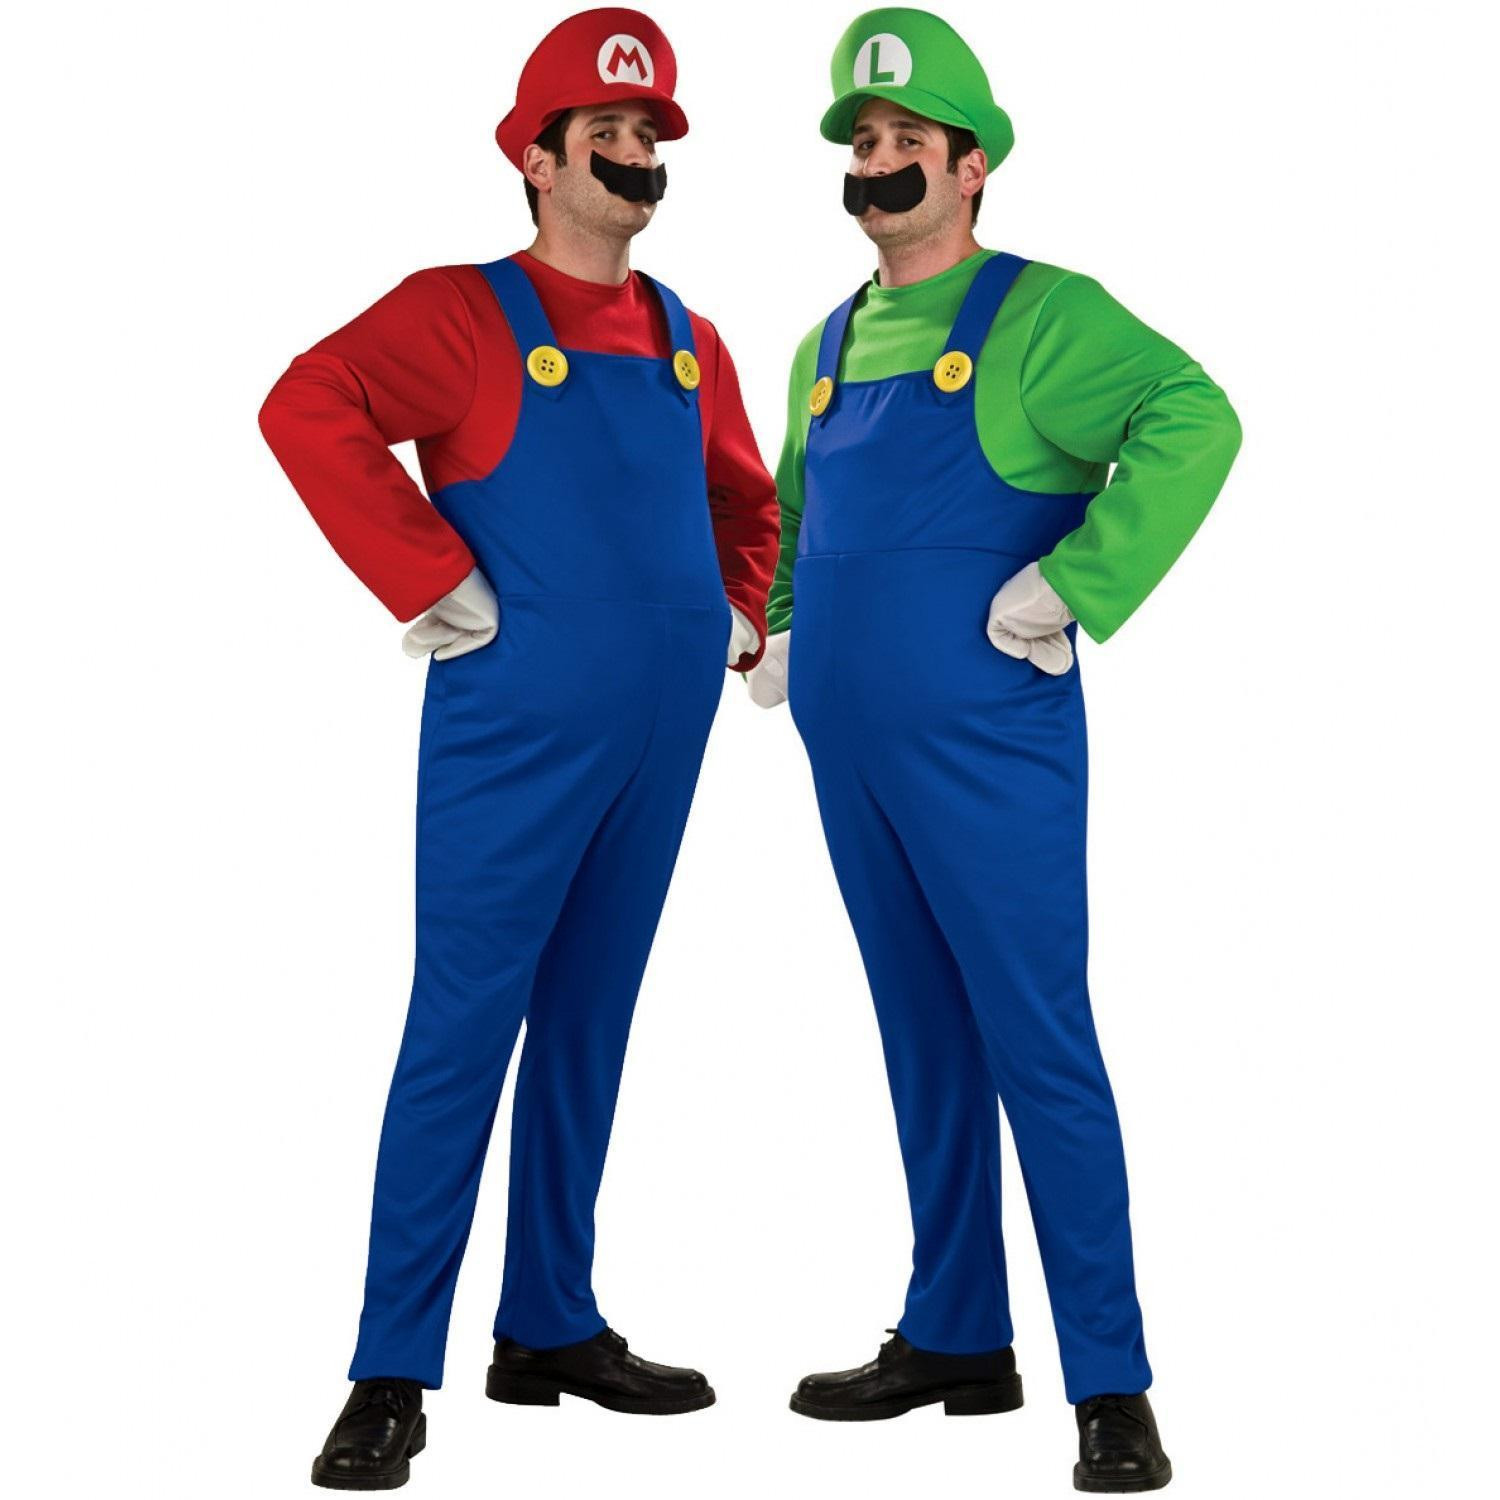 Super Mario Costume DIY  How To Make a DIY Mario Costume 5 steps with images